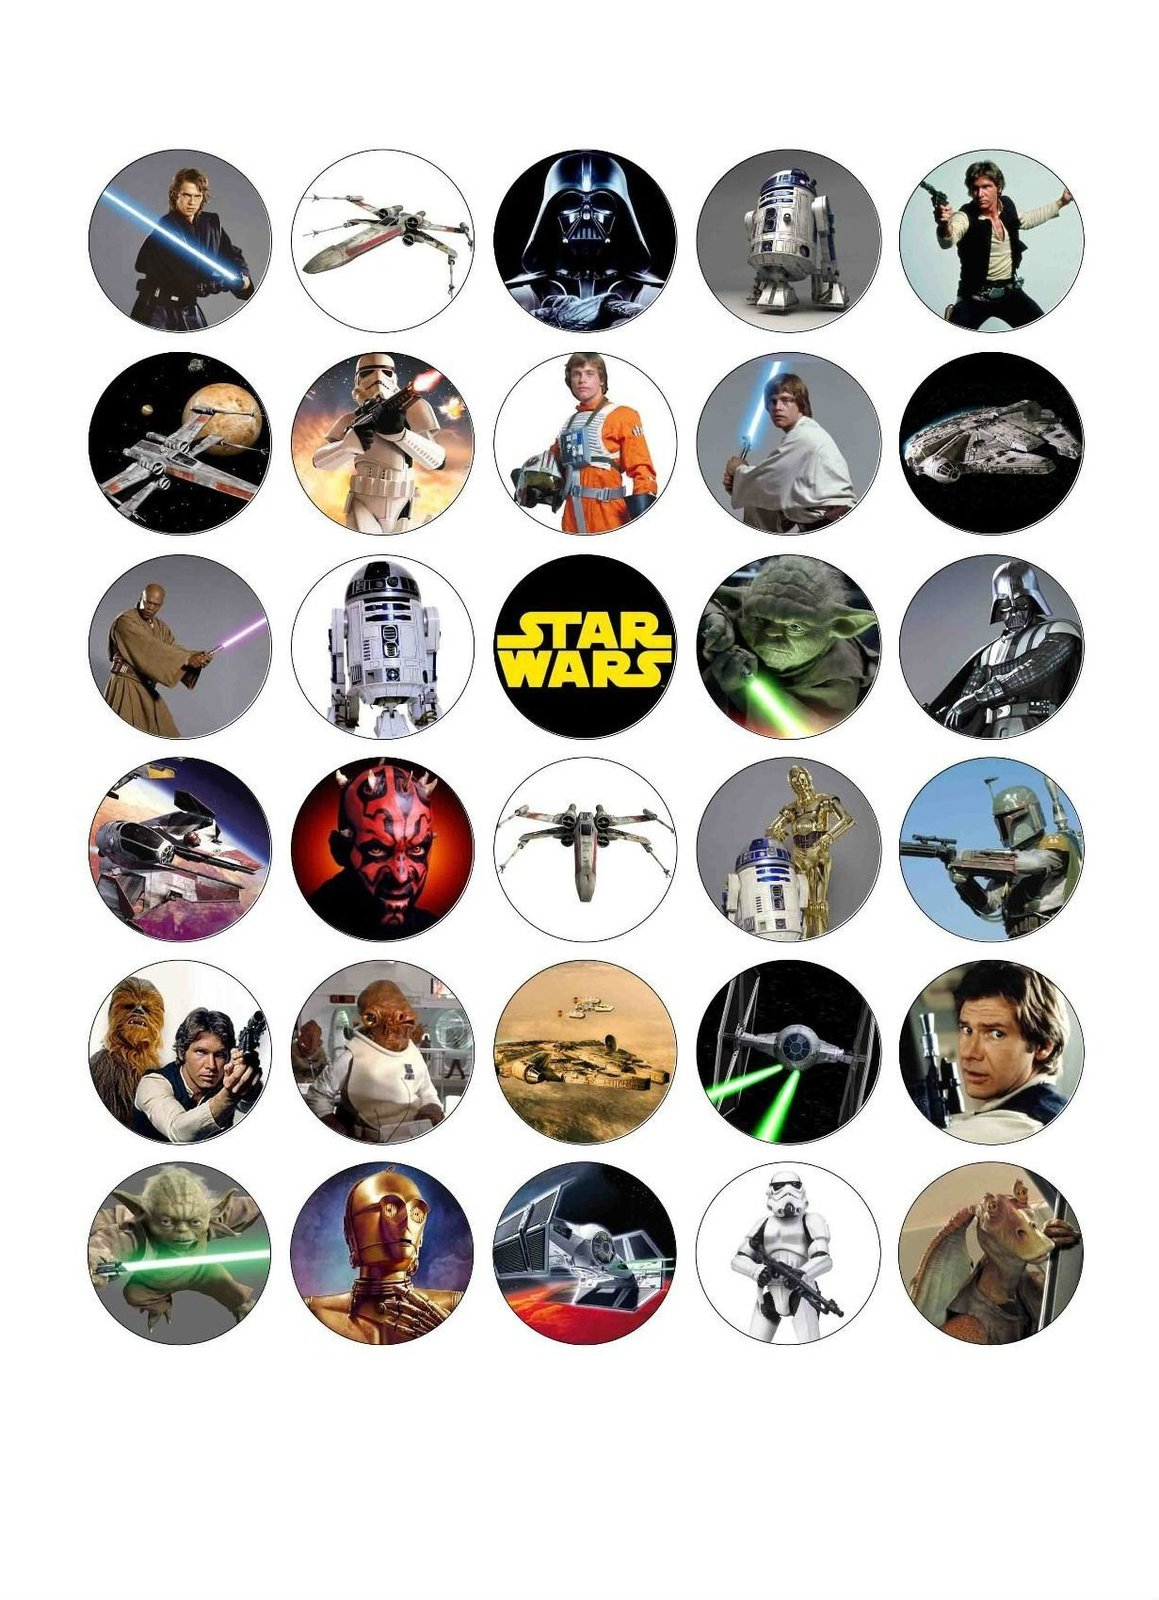 Star Wars Edible Cake Toppers Australia